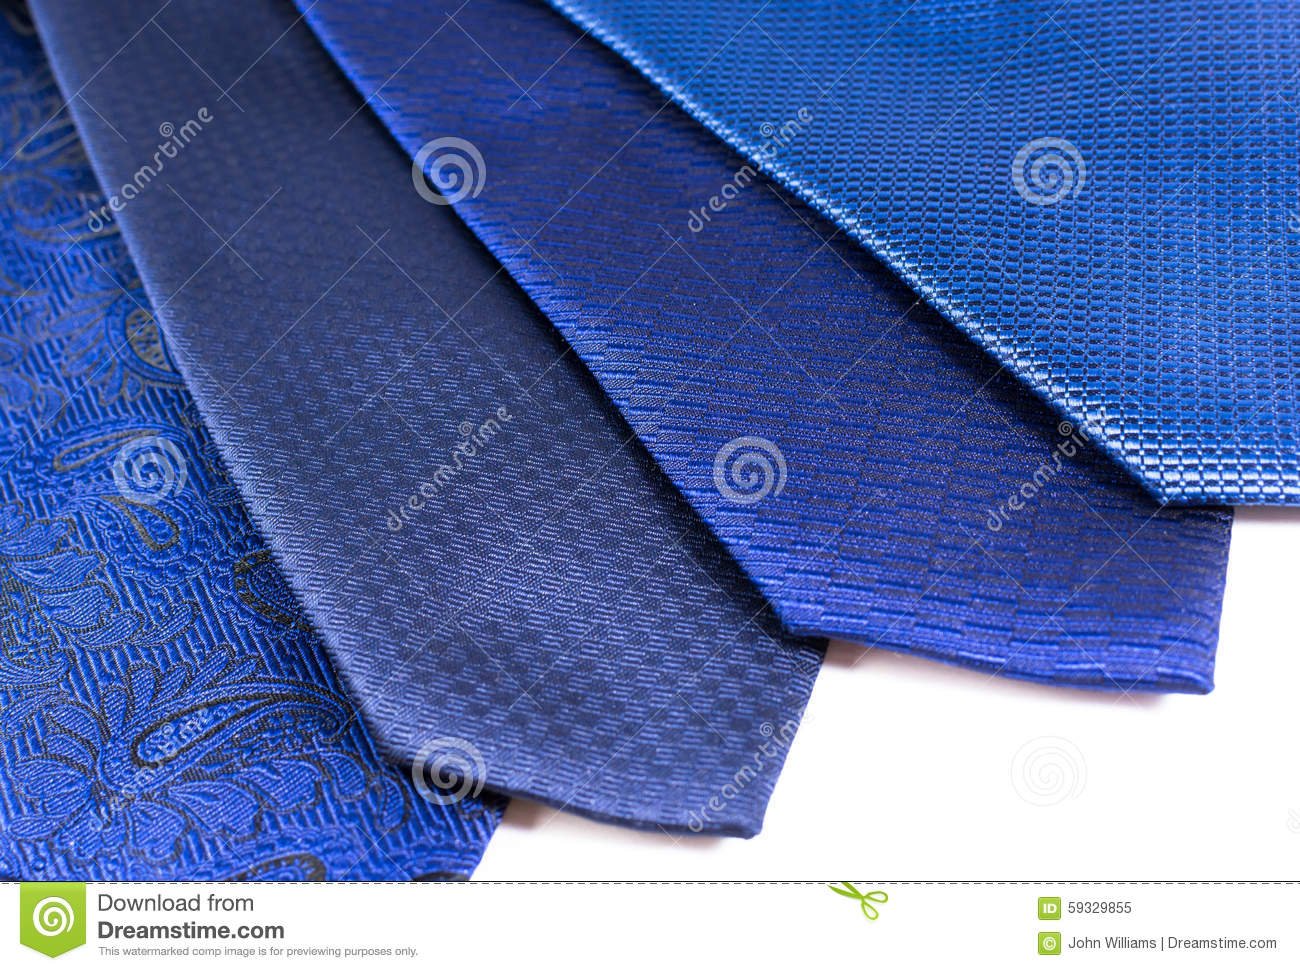 0286faec011971 Four blue silk ties in a display row belonging to a modern business man on  a white background